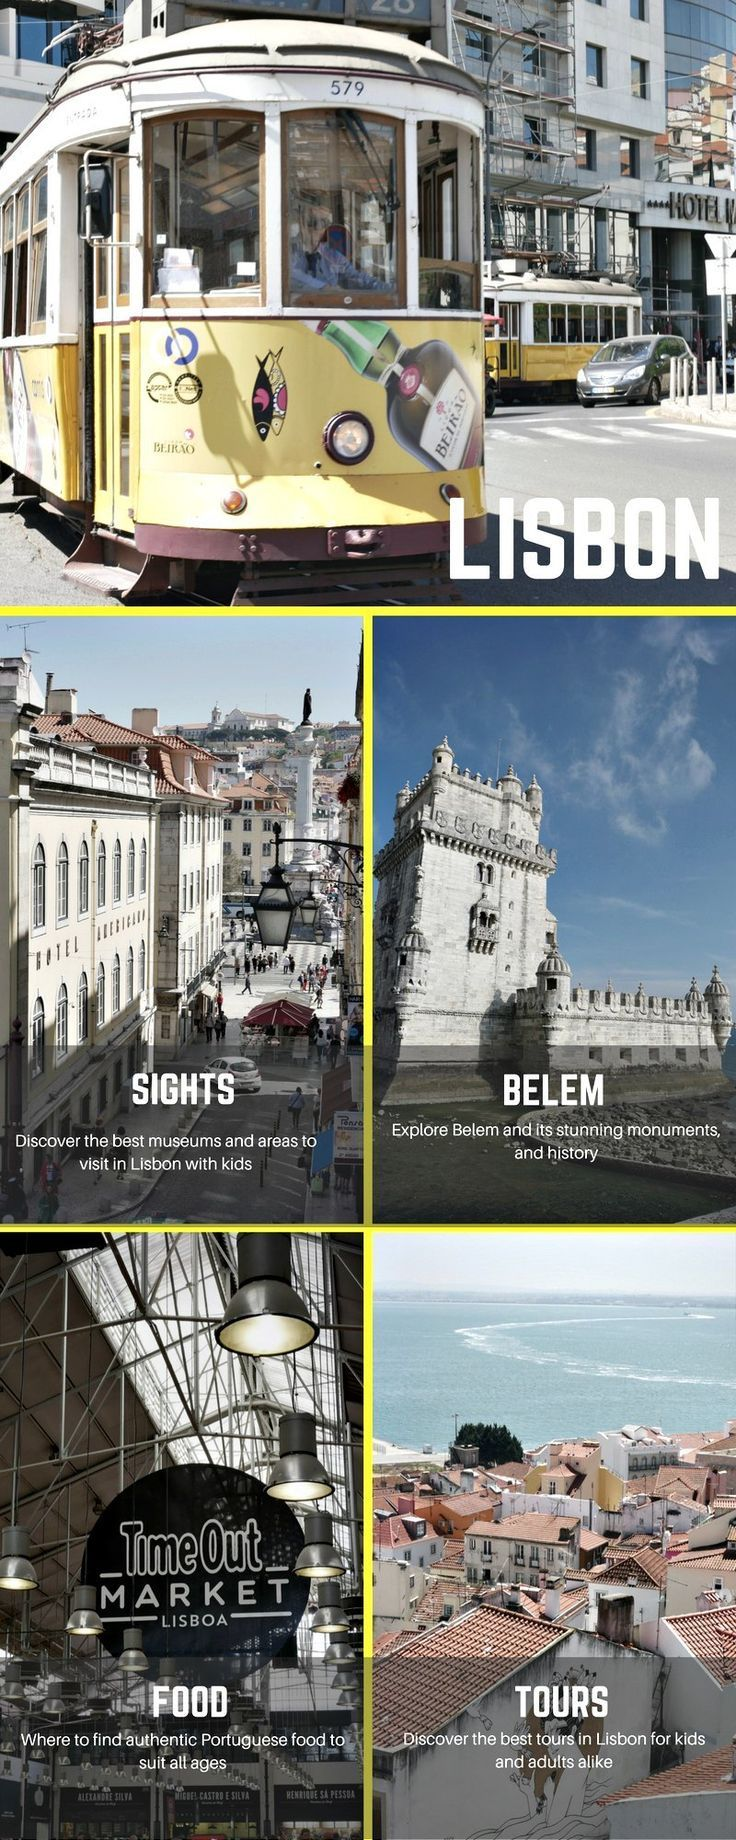 Our round up of the top 10 things to do in Lisbon with kids including museums, sights, walks and tours.